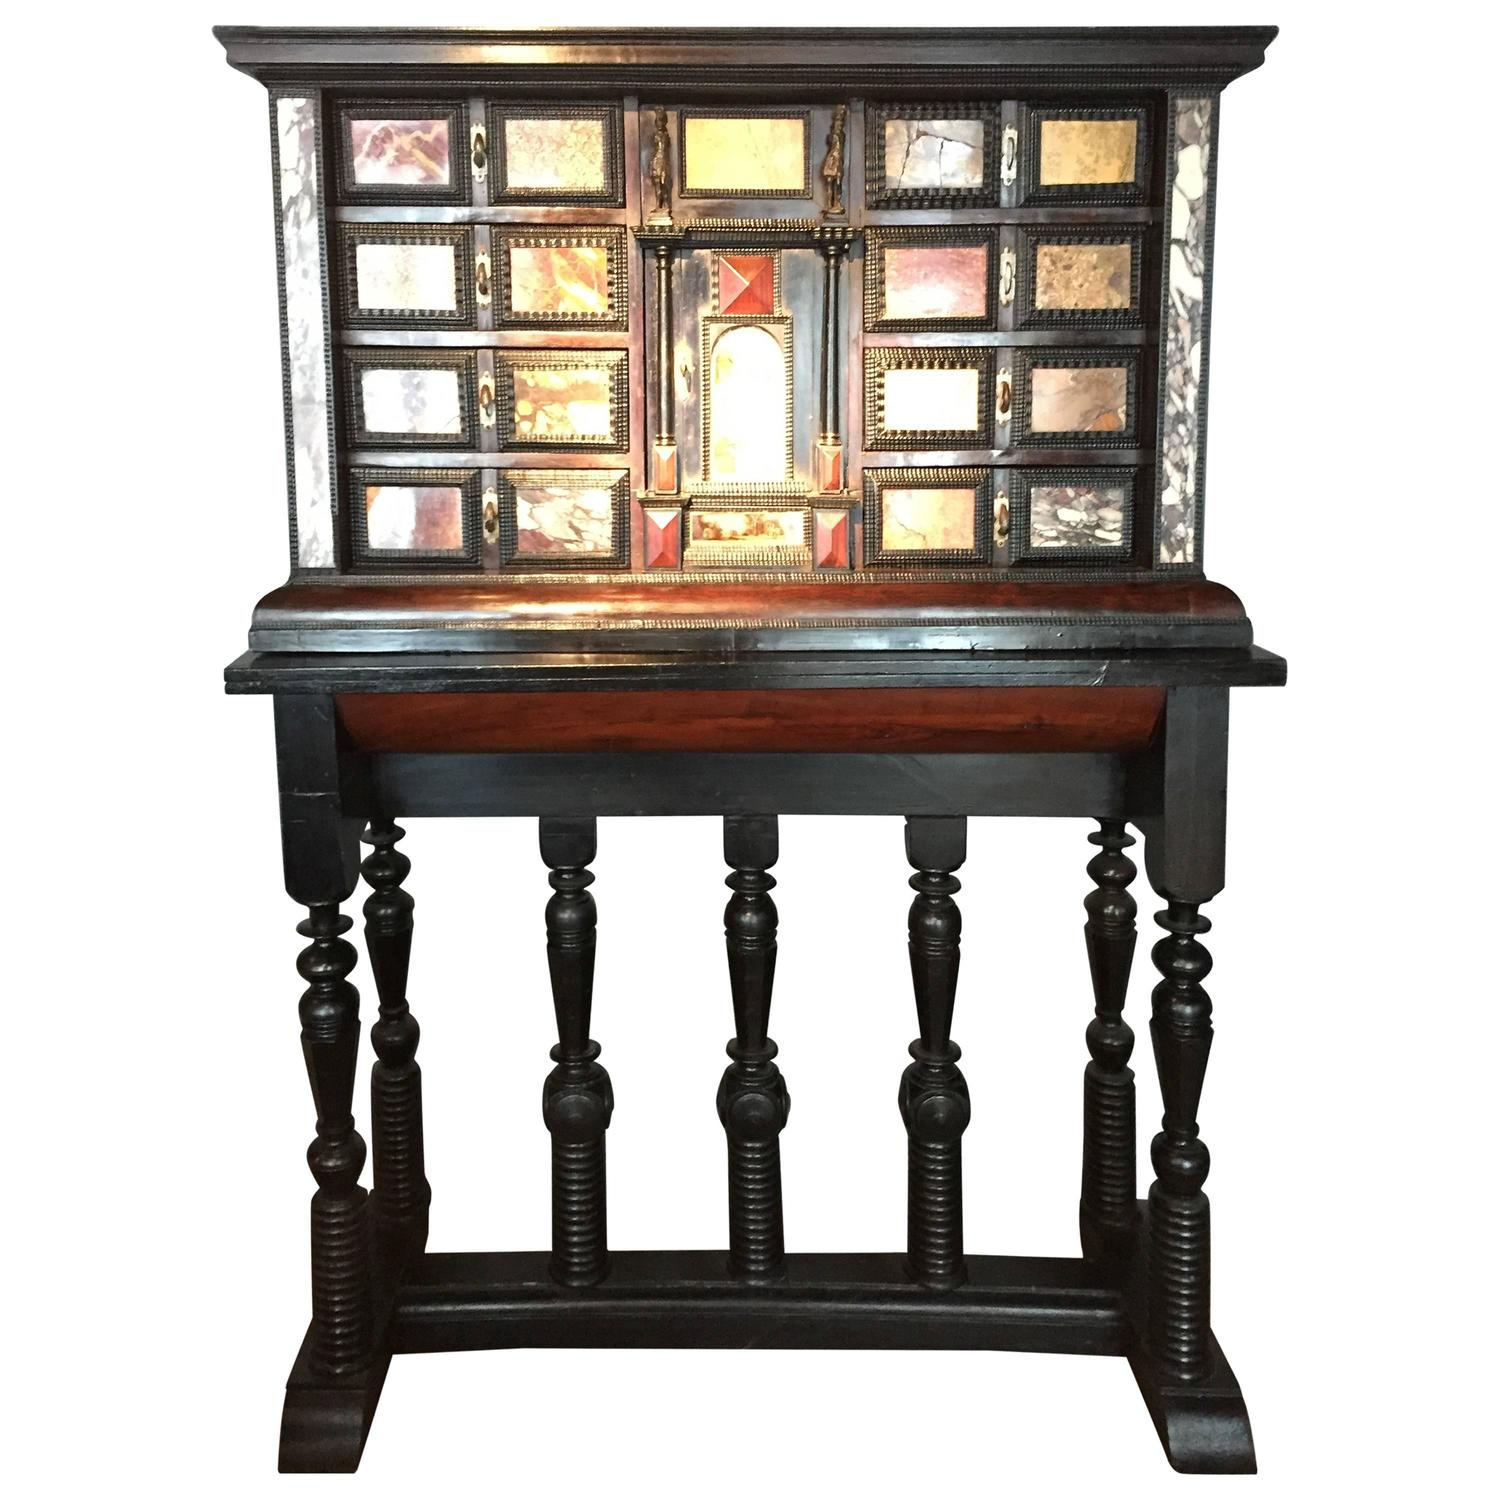 Display cabinet with marble drawers for sale at 1stdibs for Kitchen drawers for sale